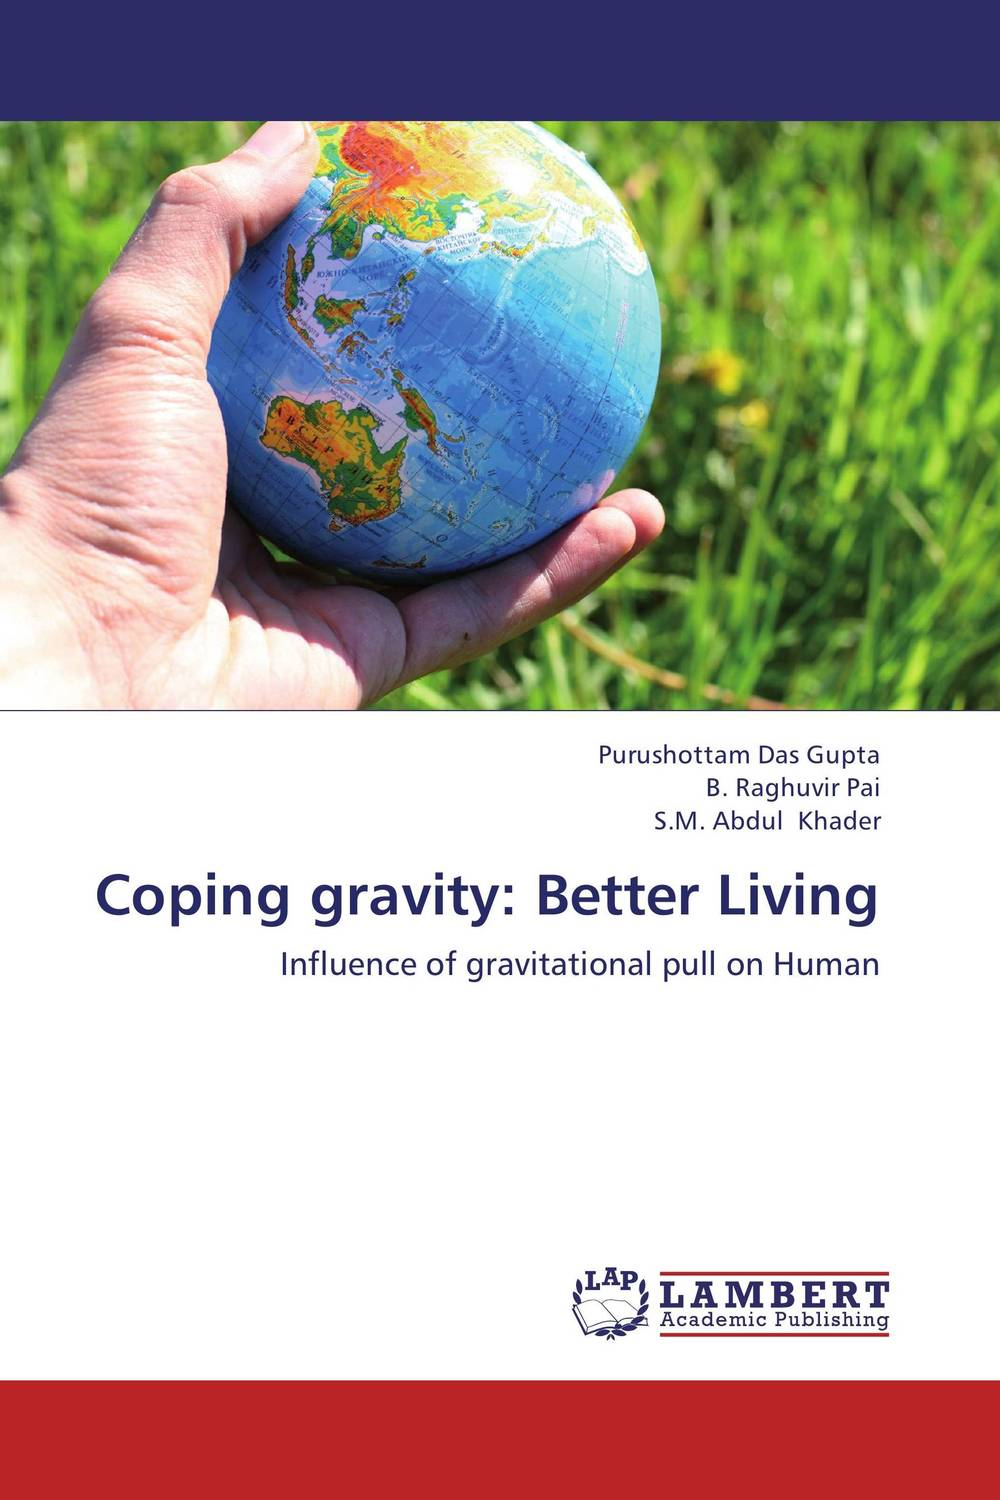 Coping gravity: Better Living is this the life we really want виниловая пластинка